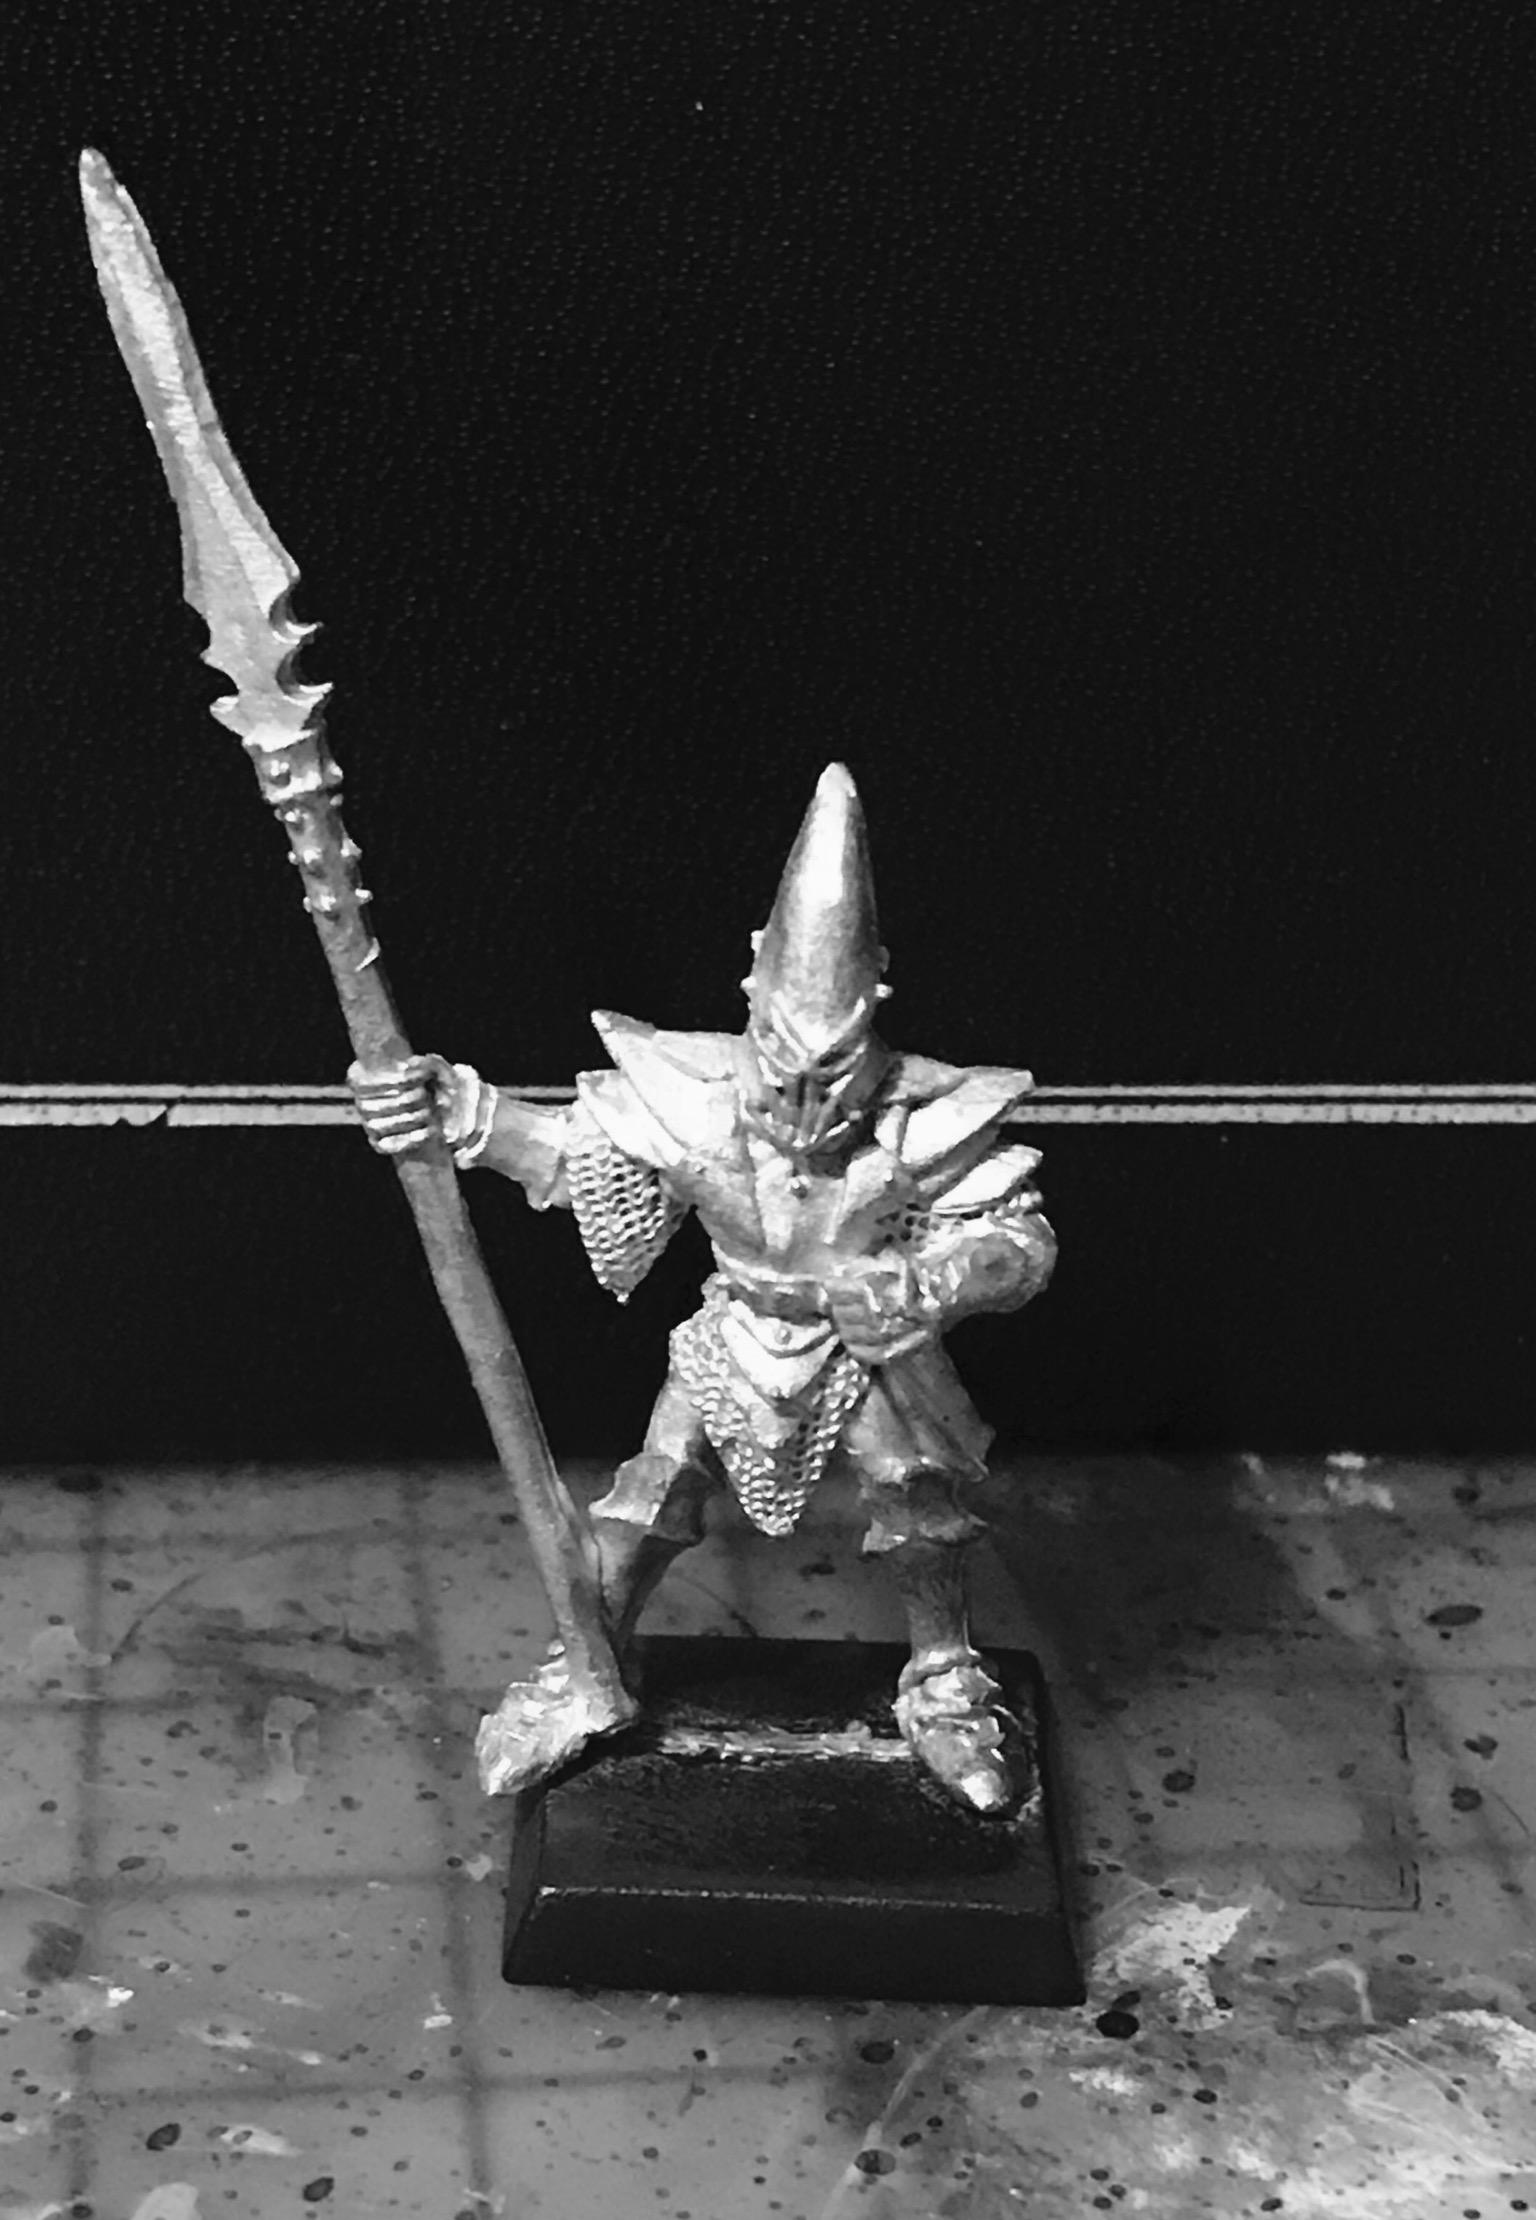 Agony, Aos28, Archers, Battle, Bowmen, Cavalry, Champion, Chaos, Citadel, Cruel, Cult, Dark, Elric, Eternal, Evil, Fj, General, Grim, Lords, Melniboné, Melnibonean, Metal, Michael, Miniatures, Minis, Misery, Moorcock, Moorcockian, Mordheim, Of, Oldhammer, Pewter, Play, Role, Sadistic, Skirmish, Spearman, Torture, Twisted, Vile, Warhammer Fantasy